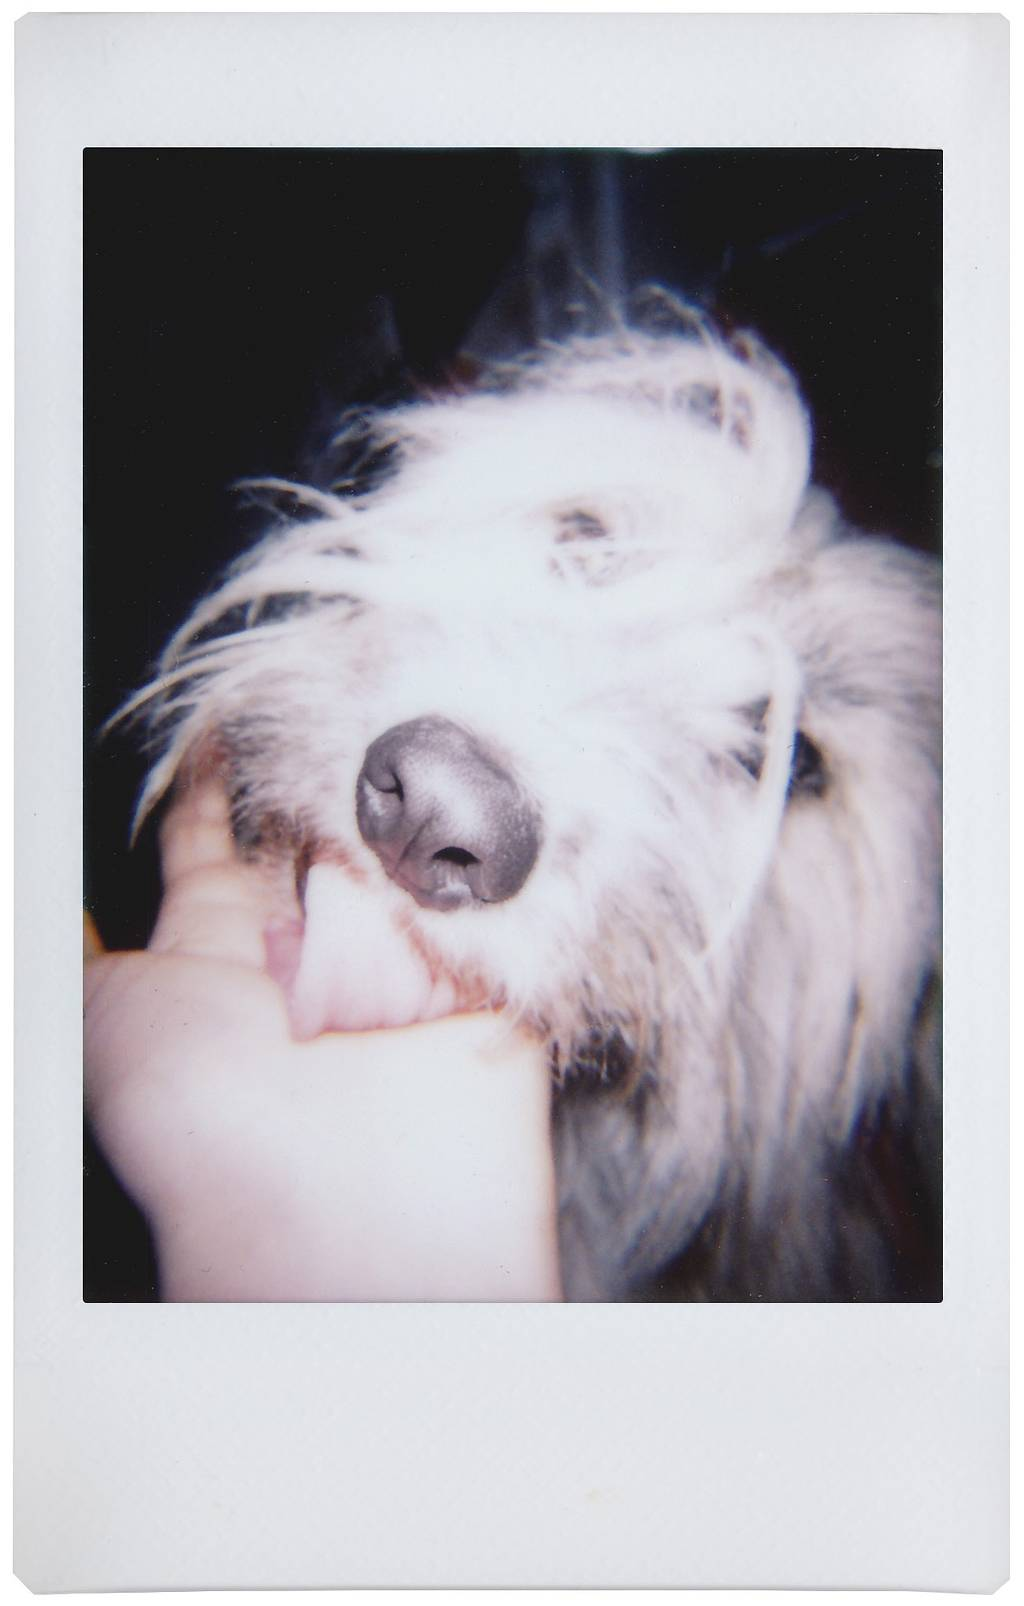 The Lomo'Instant Barks & Laughs